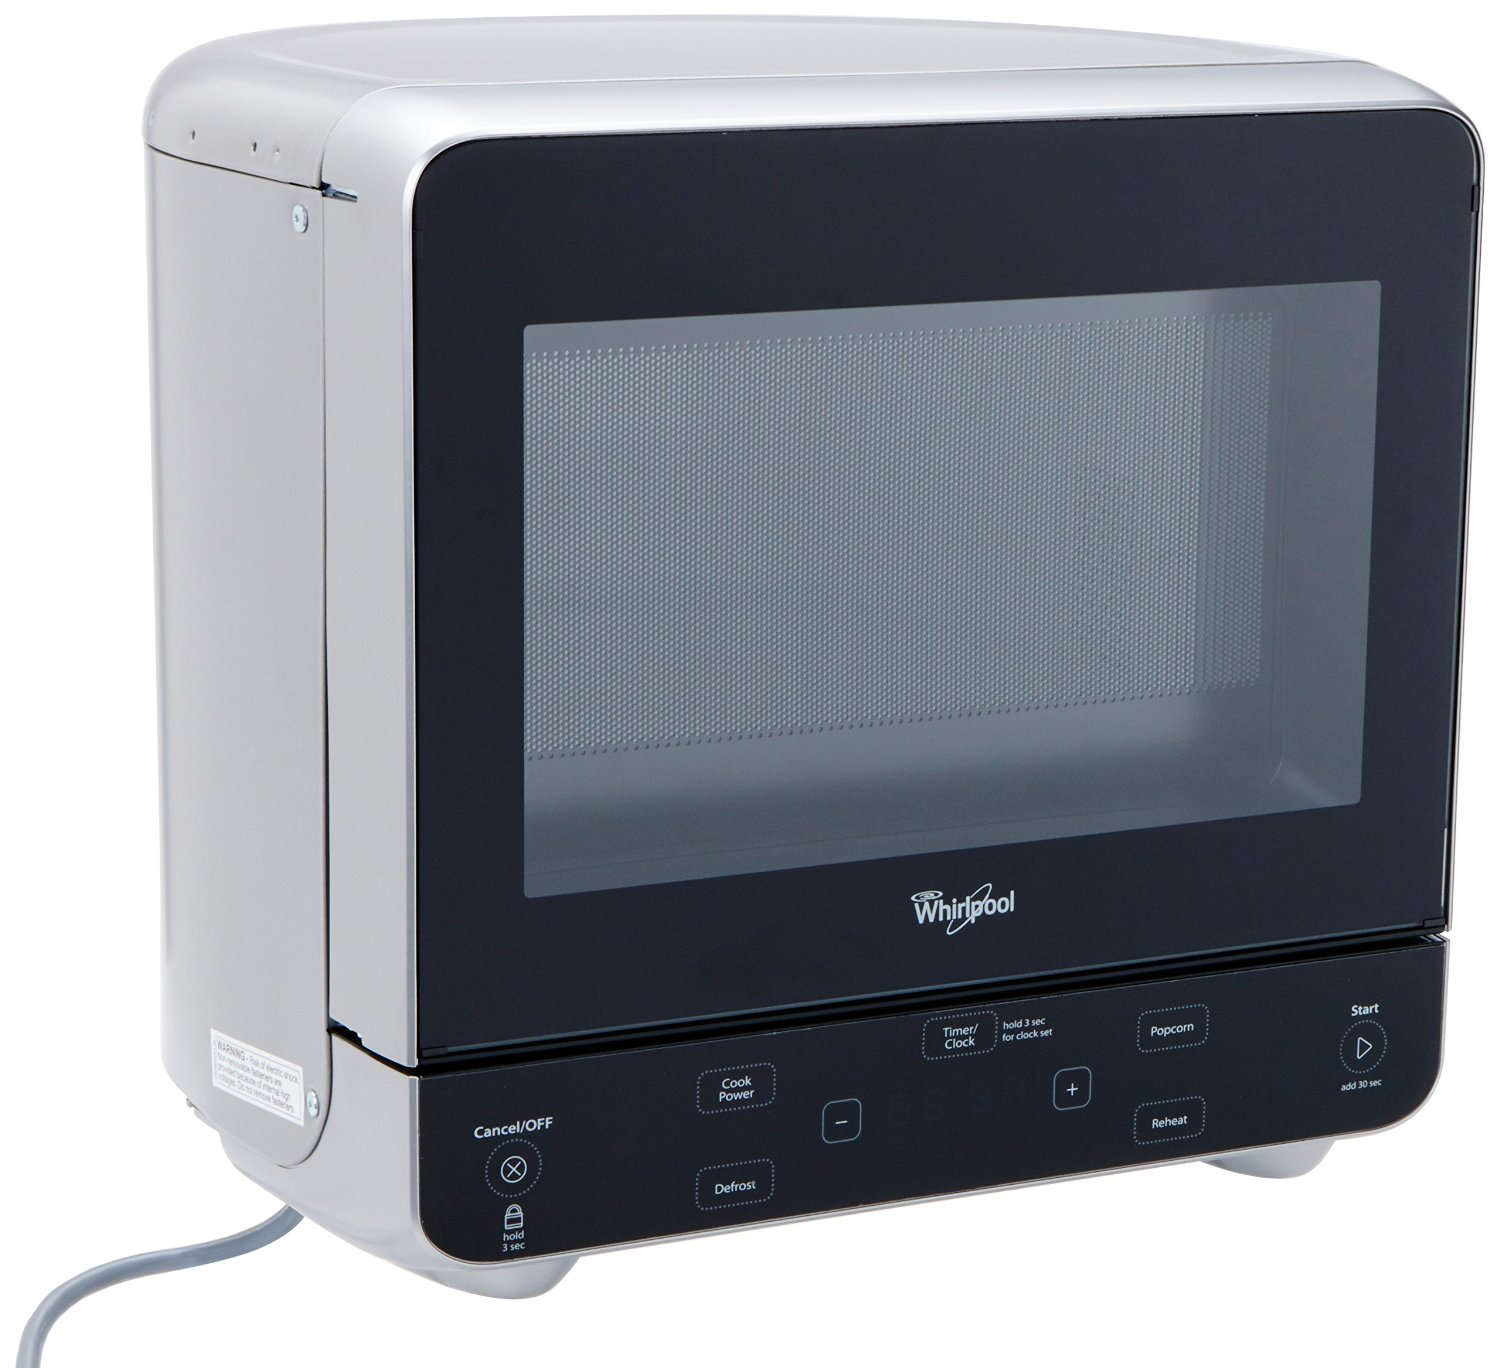 Small microwave ovens walmart bestmicrowave - Small space microwave photos ...